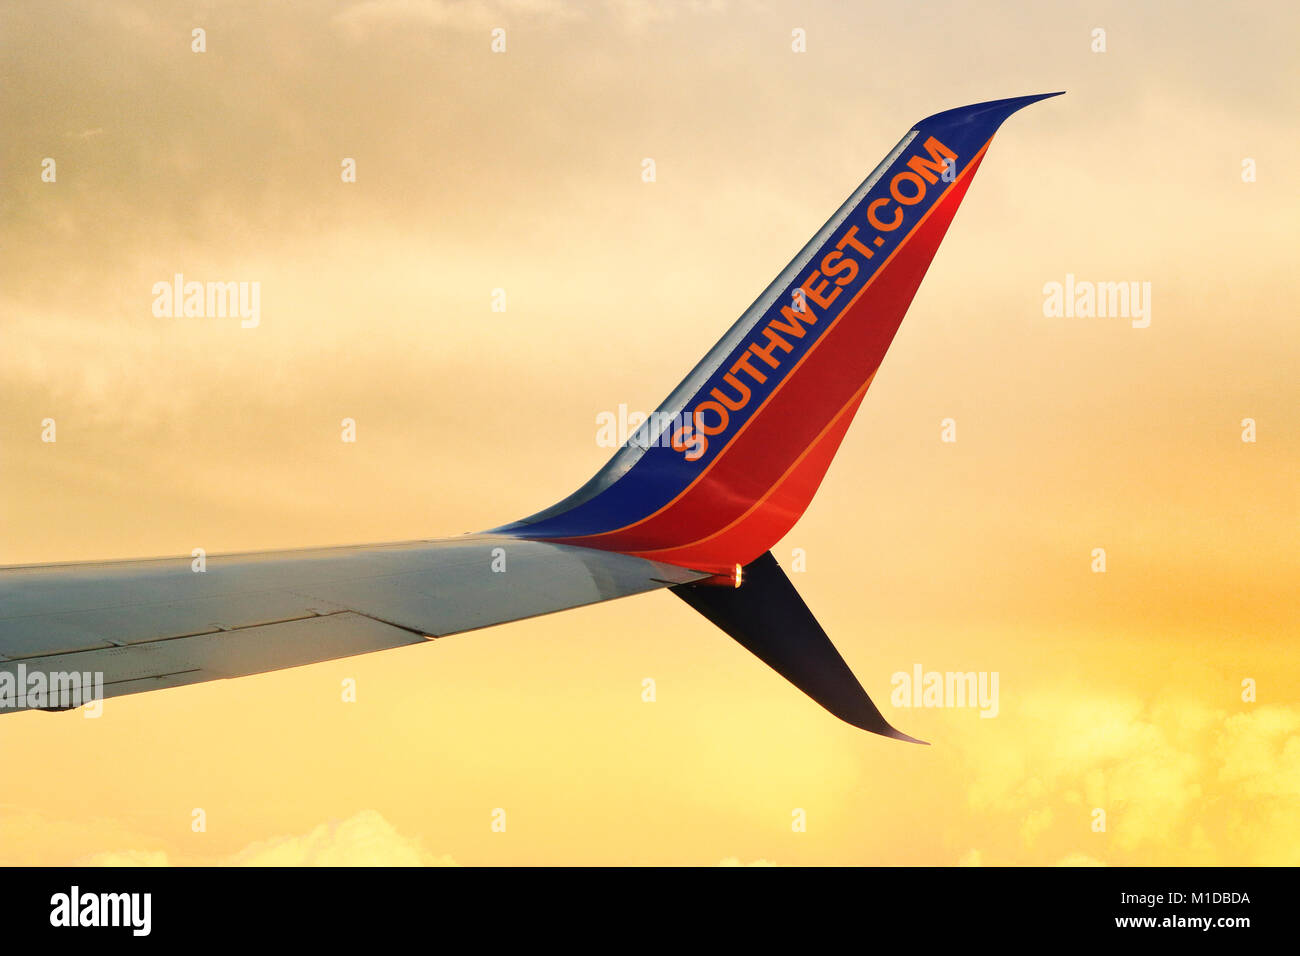 Winglet of Beoing 737 plane bearing Southwest Airline logo and website flying with sunset clouds background. Boeing - Stock Image